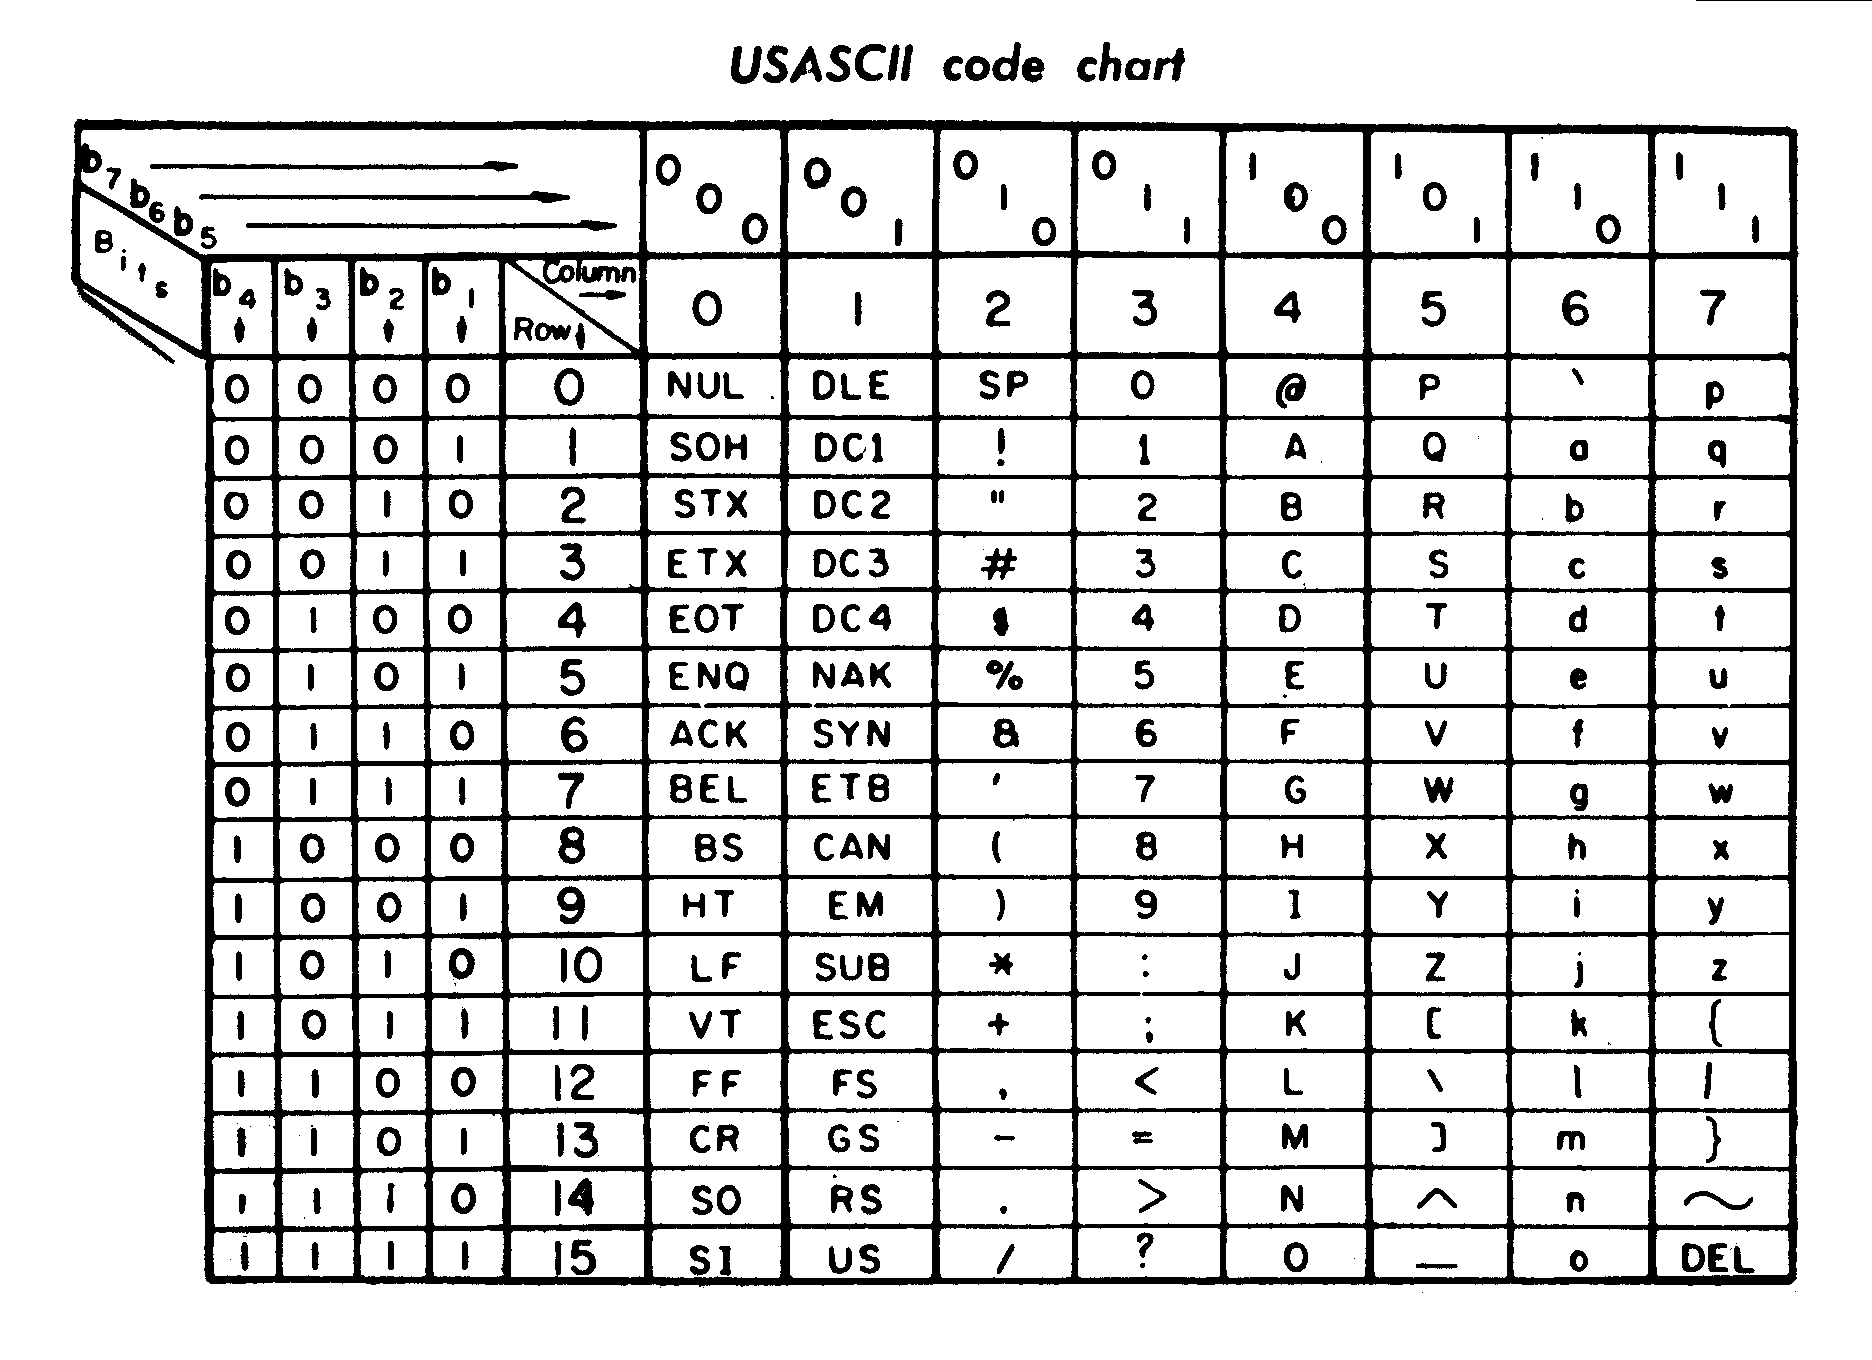 USASCII code chart (Source: Wikipedia)